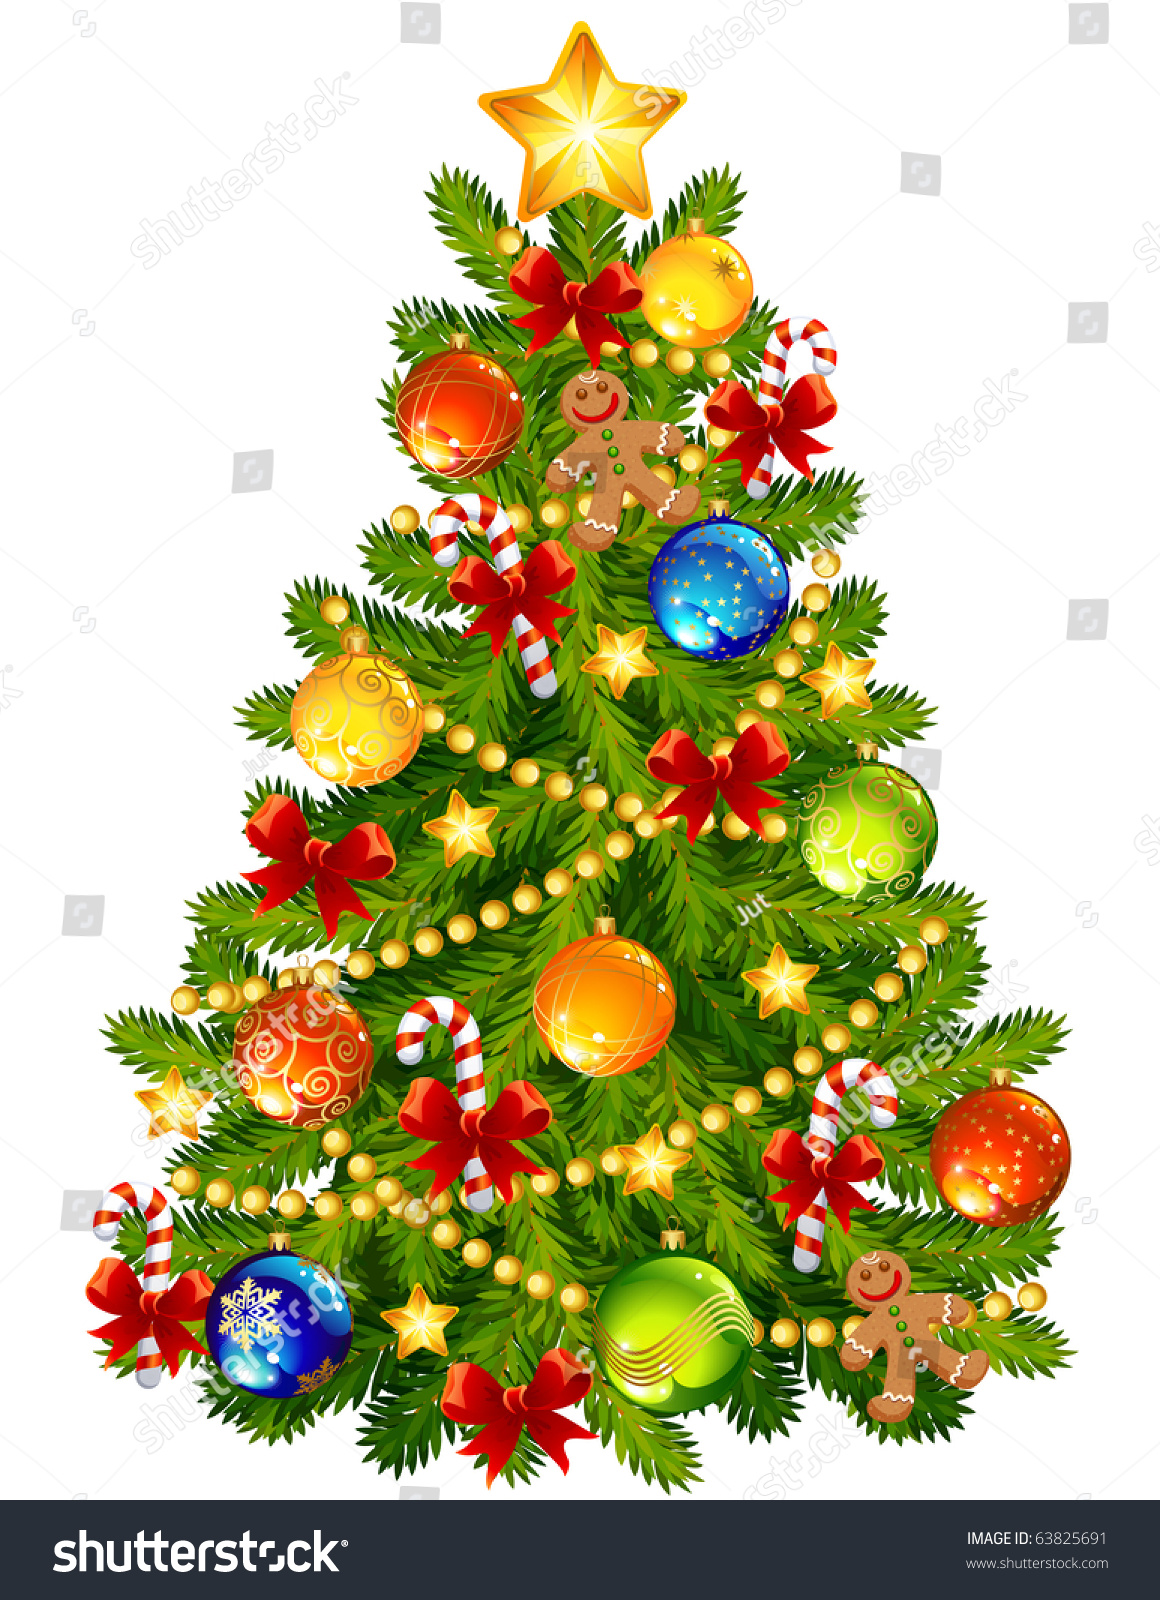 Vector Illustration Christmas Tree Stock Vector 63825691